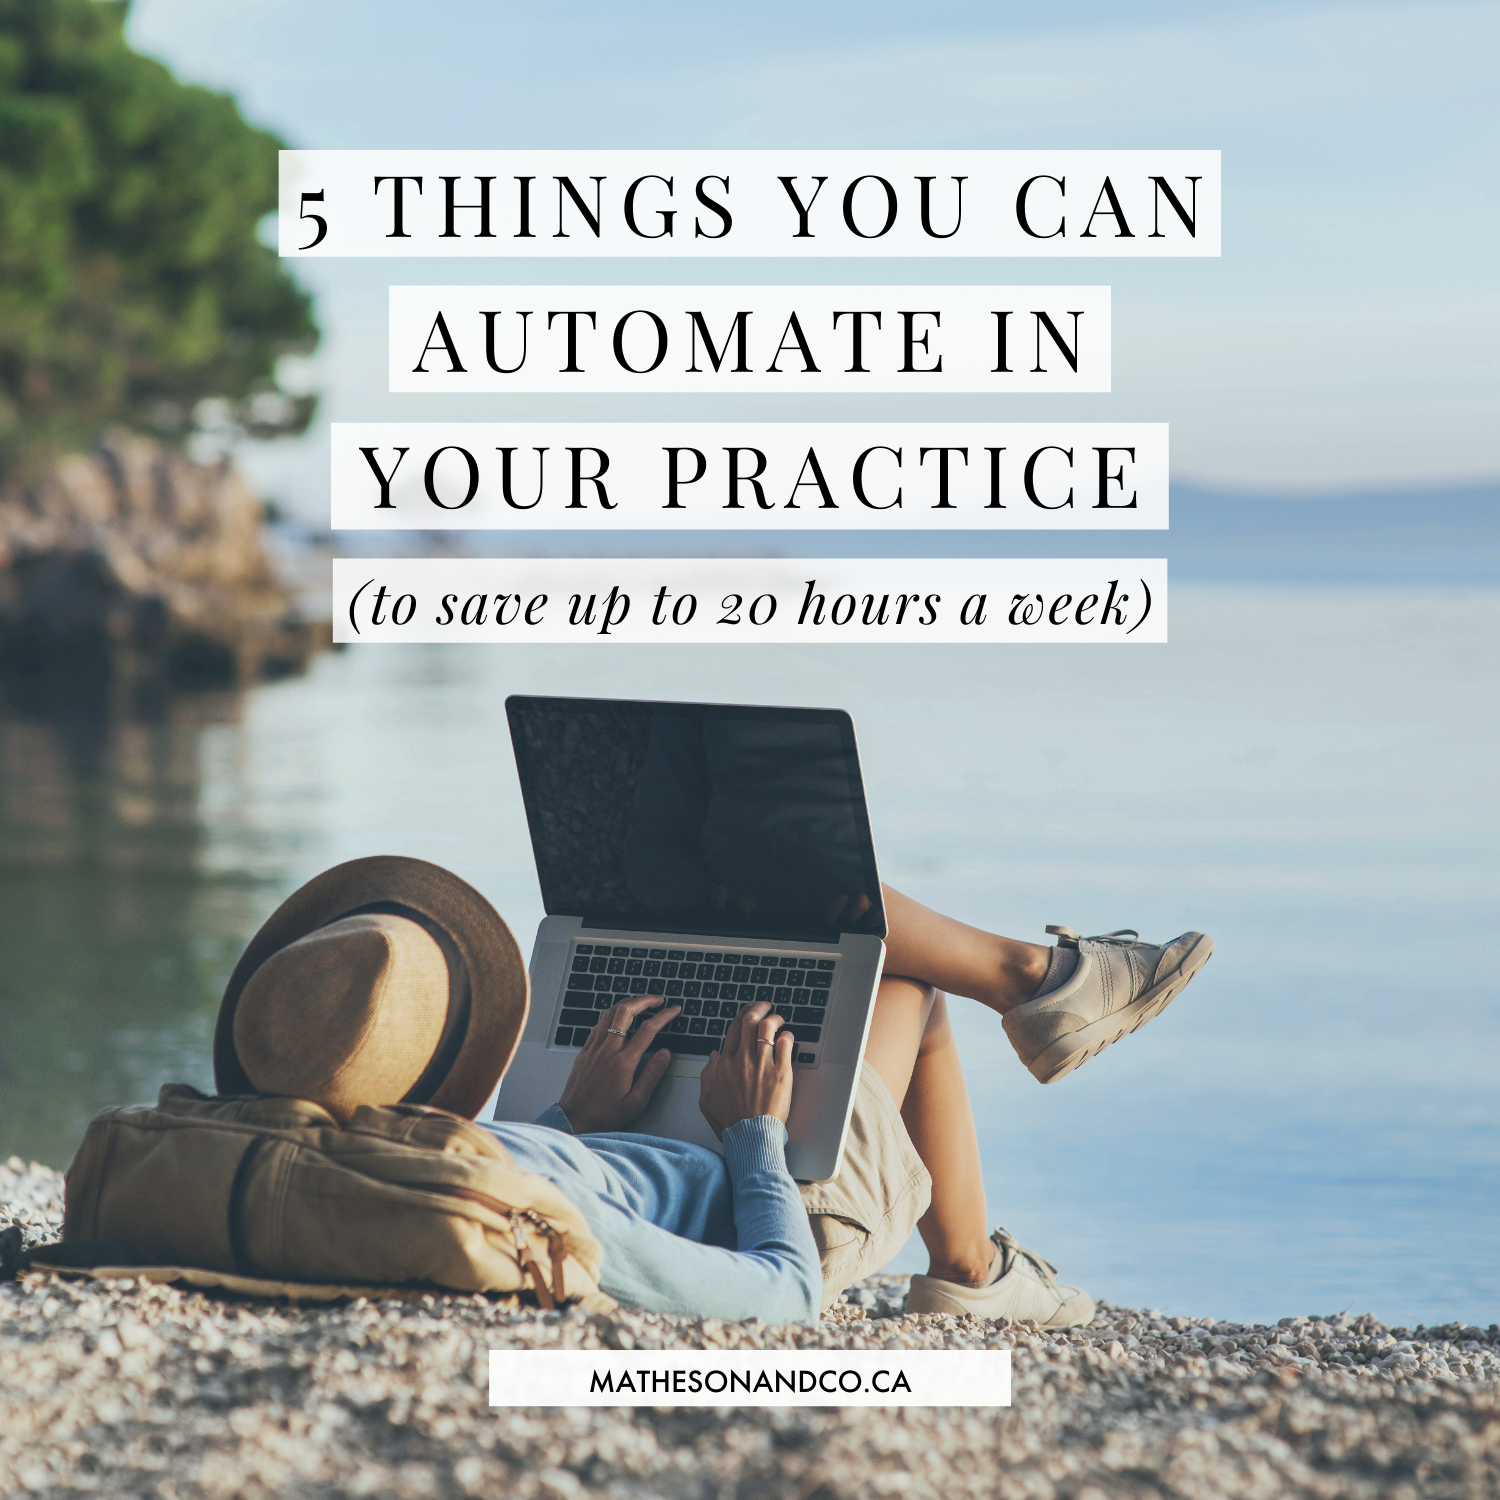 5 Things You Can Automate In Your Practice (to save up to 20 hours a week)